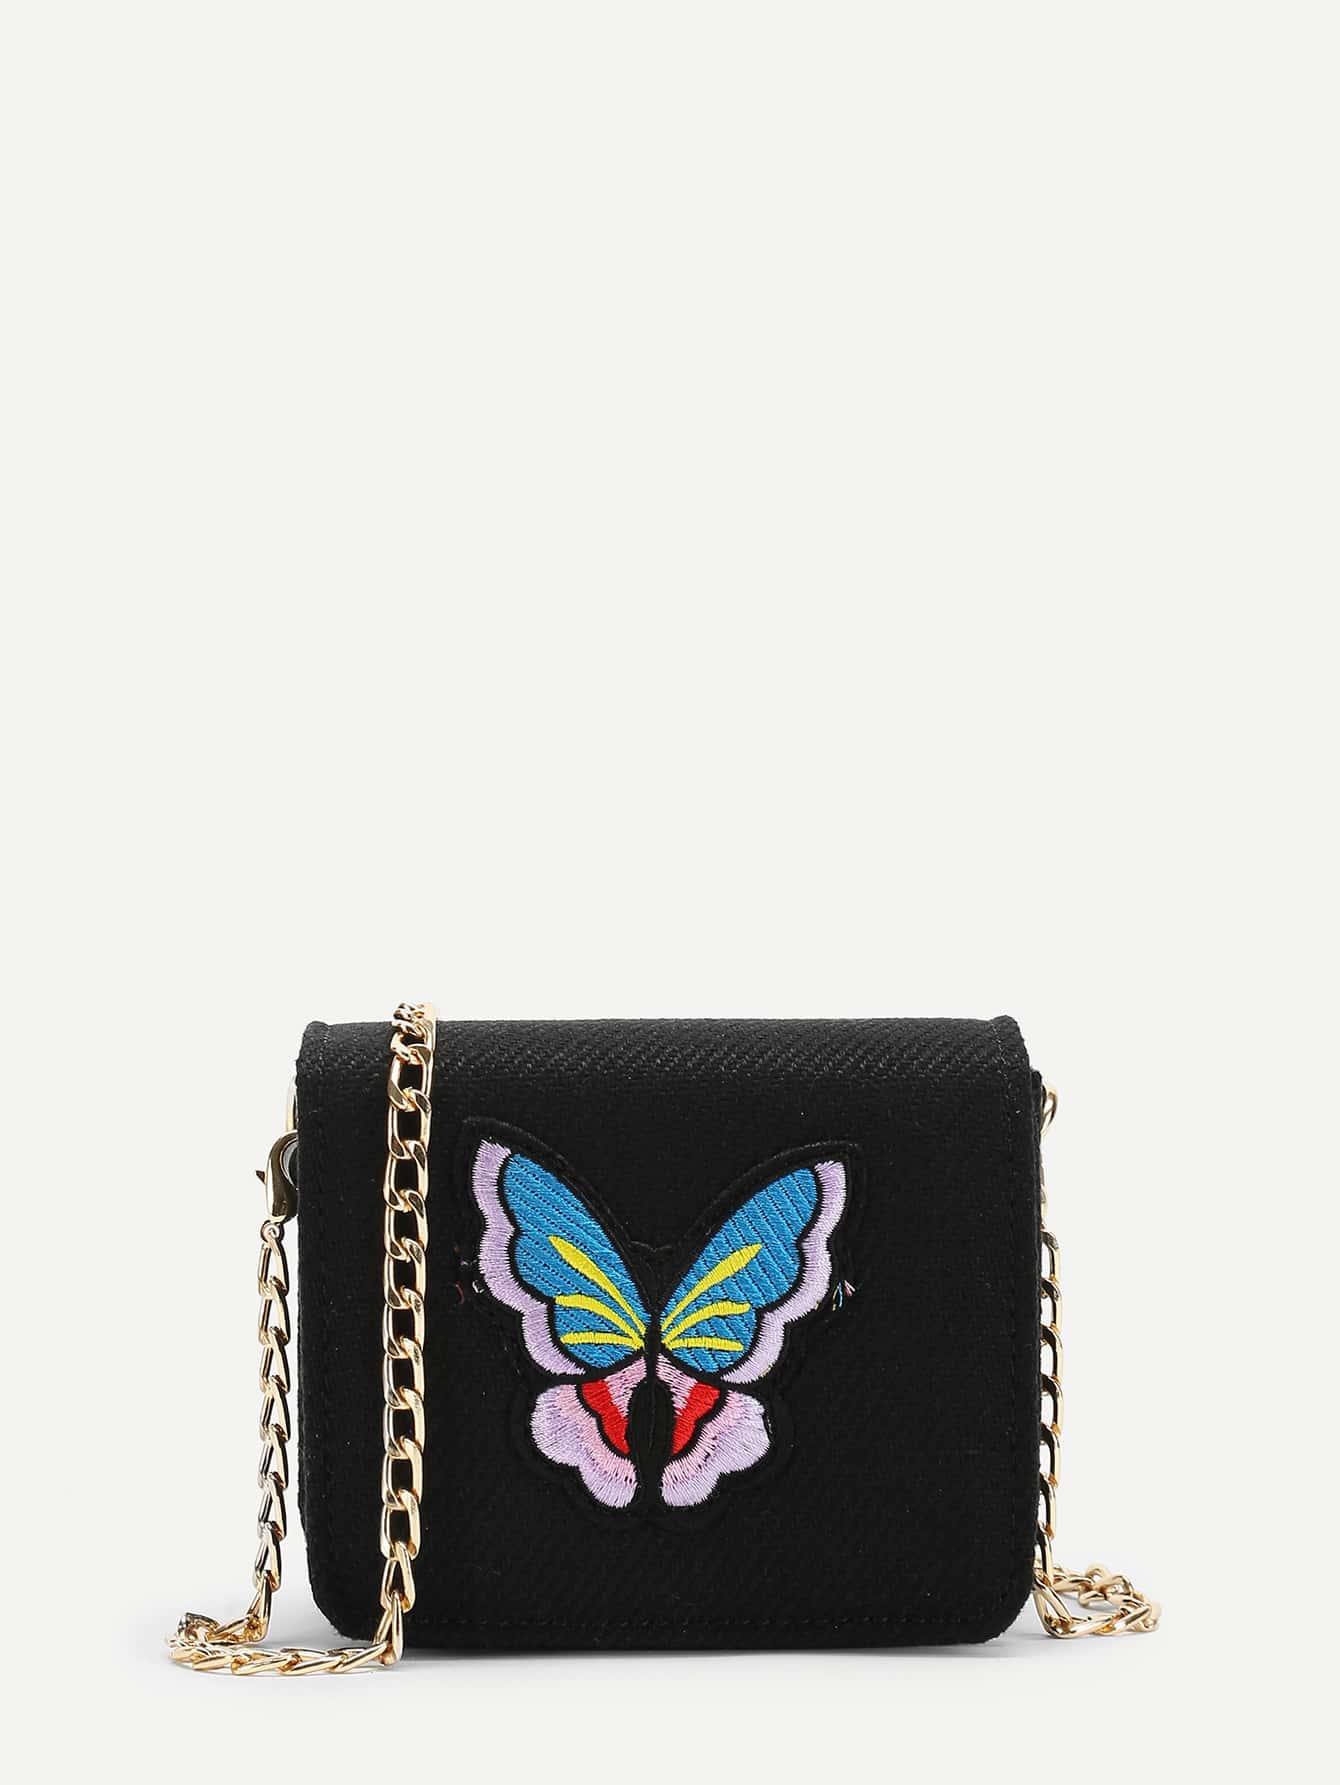 Butterfly Embroidery Flap Chain Bag flower embroidery flap chain bag